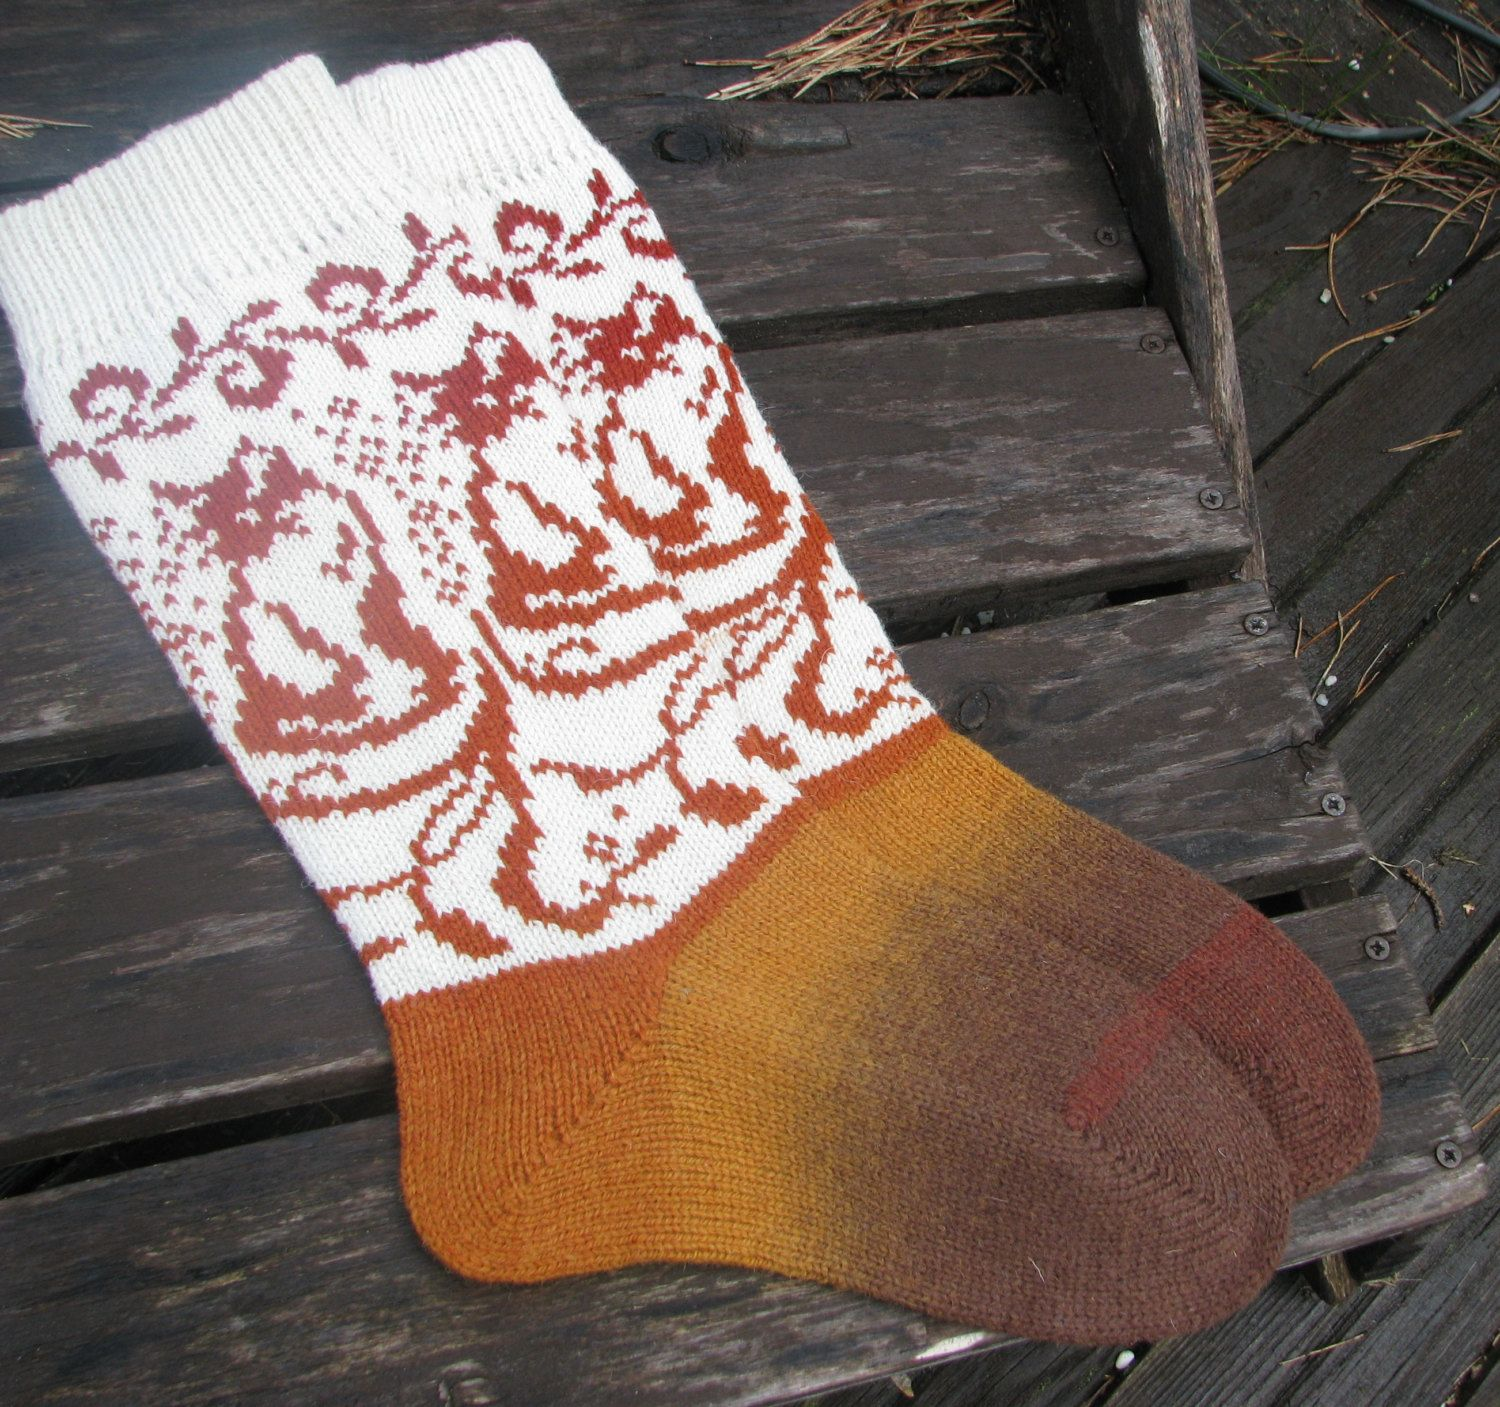 Knit socks with cat wool socks knitted socks scandinavian pattern knit socks with cat wool socks knitted socks scandinavian pattern norwegian socks christmas socks gift to bankloansurffo Image collections